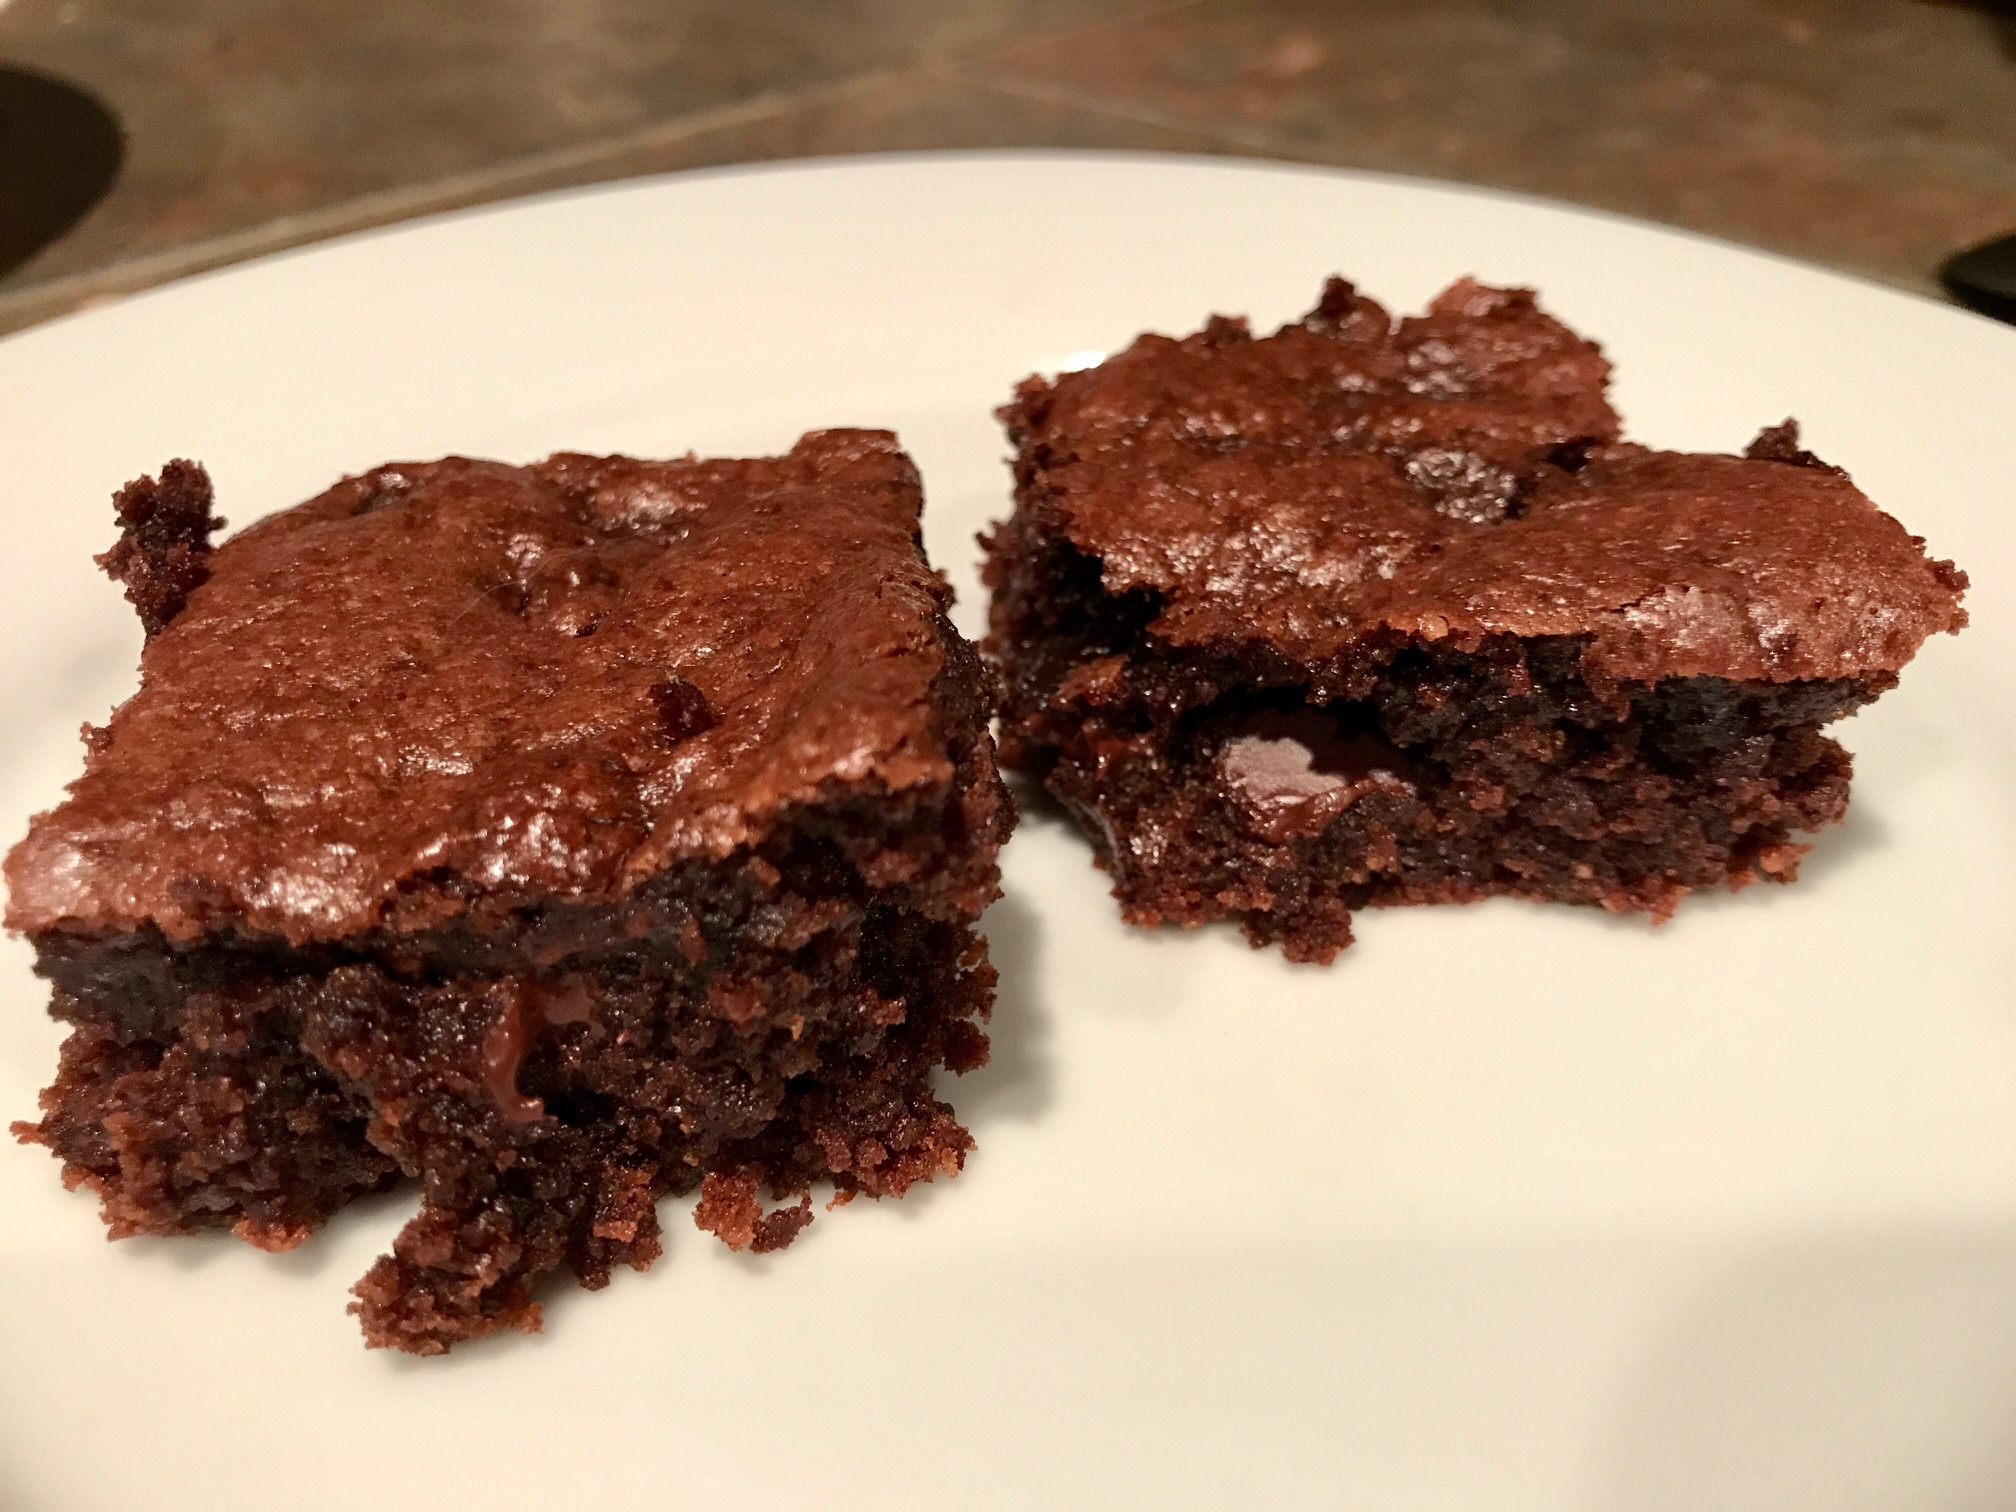 Tahini Brownies...delicious, easy brownie recipe made with tahini (sesame seed paste), can easily be made gluten-free, dairy-free, etc.   Tahini is a food used frequently in Middle Eastern cuisine in both sweet & savory ways. Easy brownie recipes, gluten-free desserts. #brownies #tahini #desserts #recipes